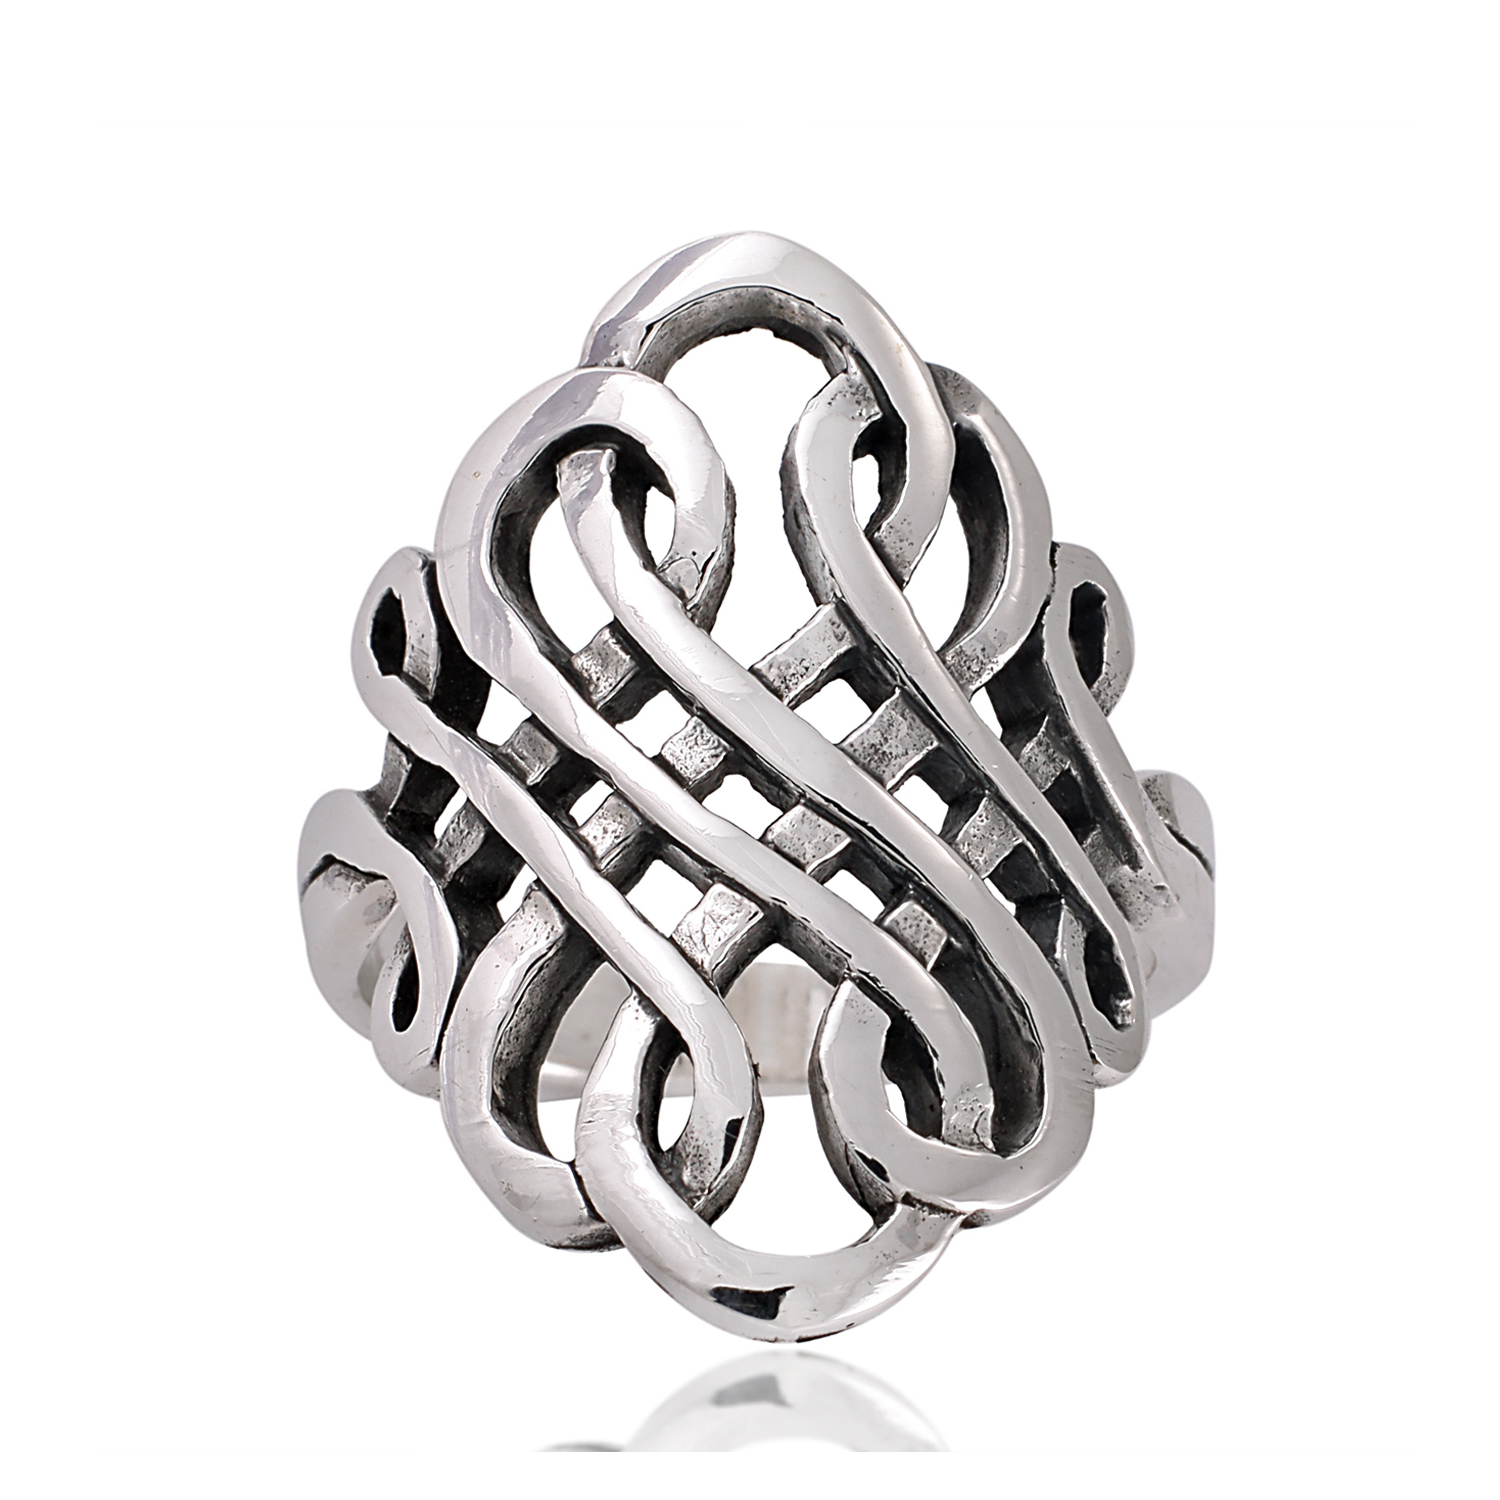 925 Sterling Silver 27 mm Oxidized Detailed Swirl Celtic Wide Band Ring -Nickel Free- Size 6